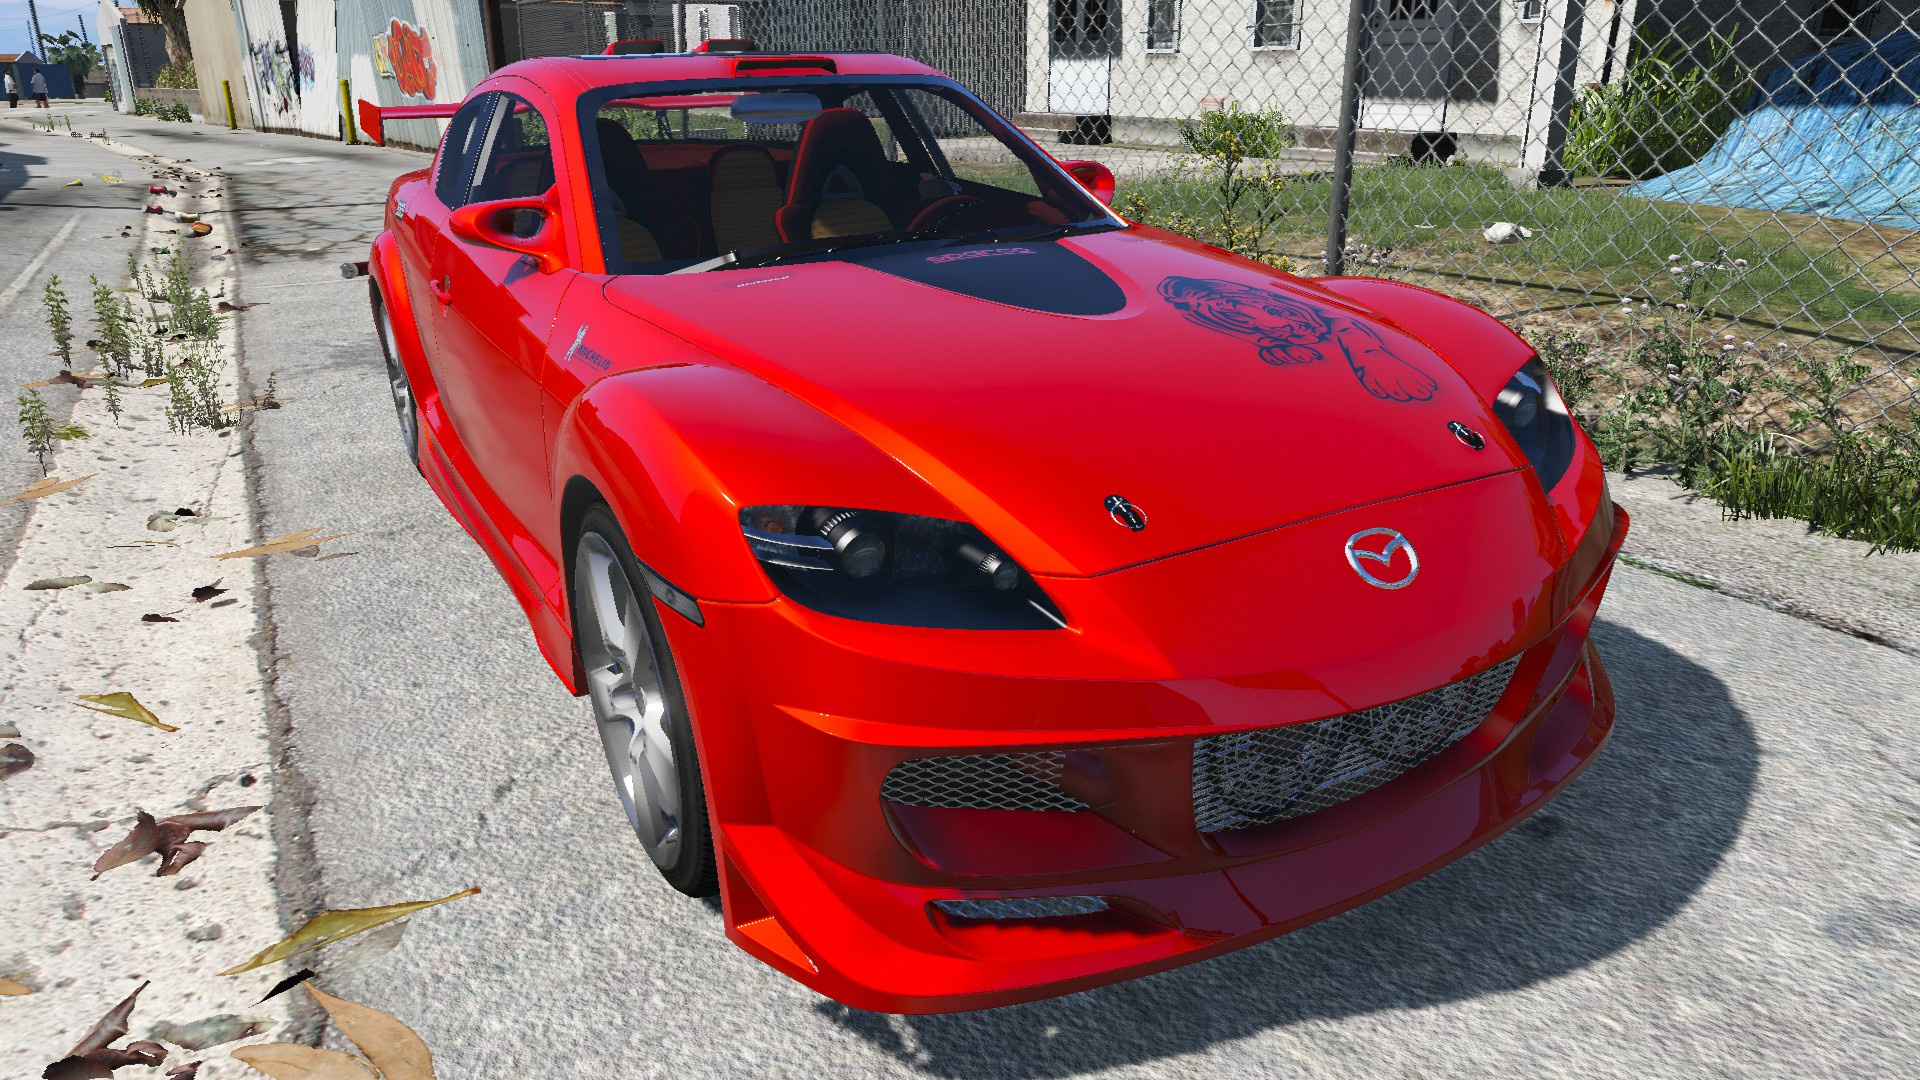 miles rx img com sale red wanted mazda gt fs